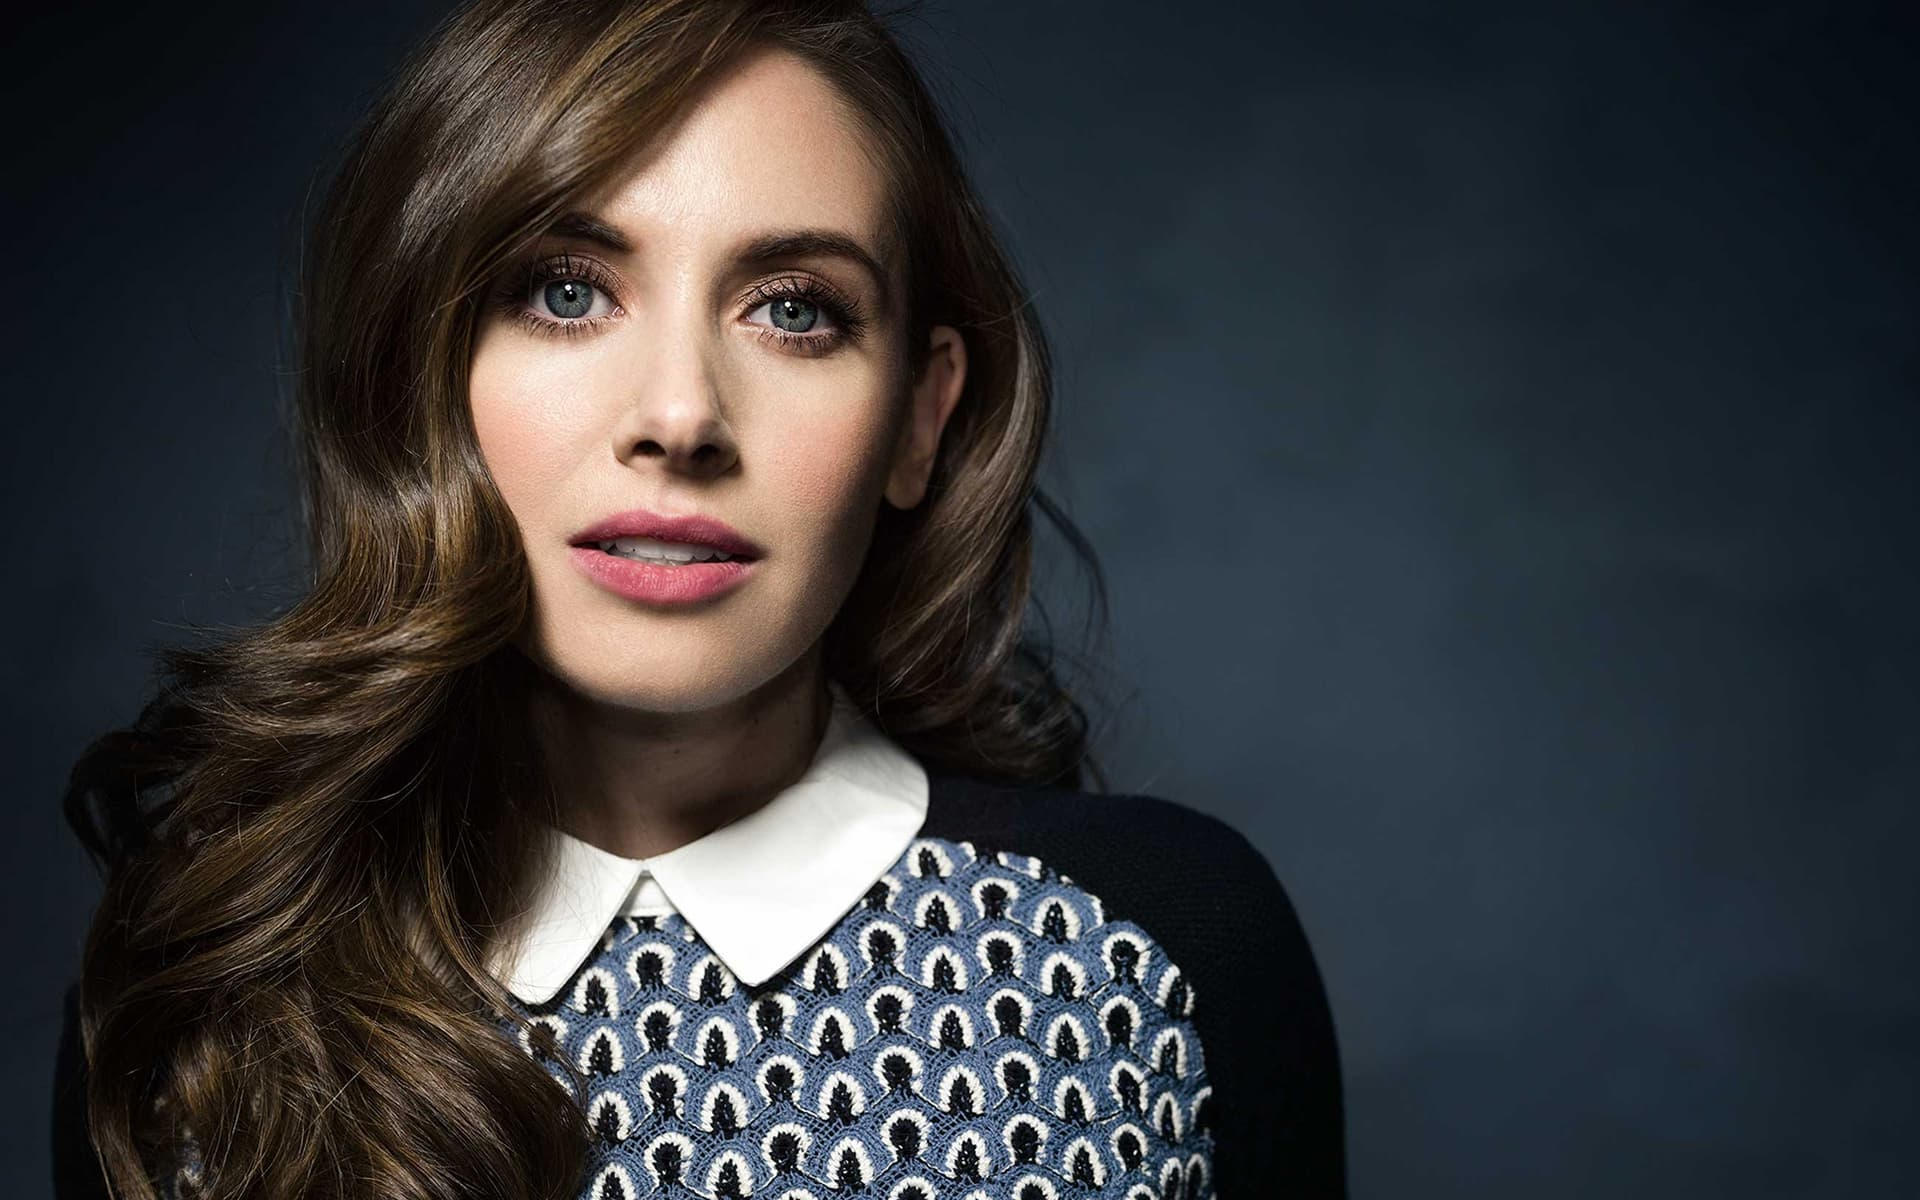 1920x1200 - Alison Brie Wallpapers 7